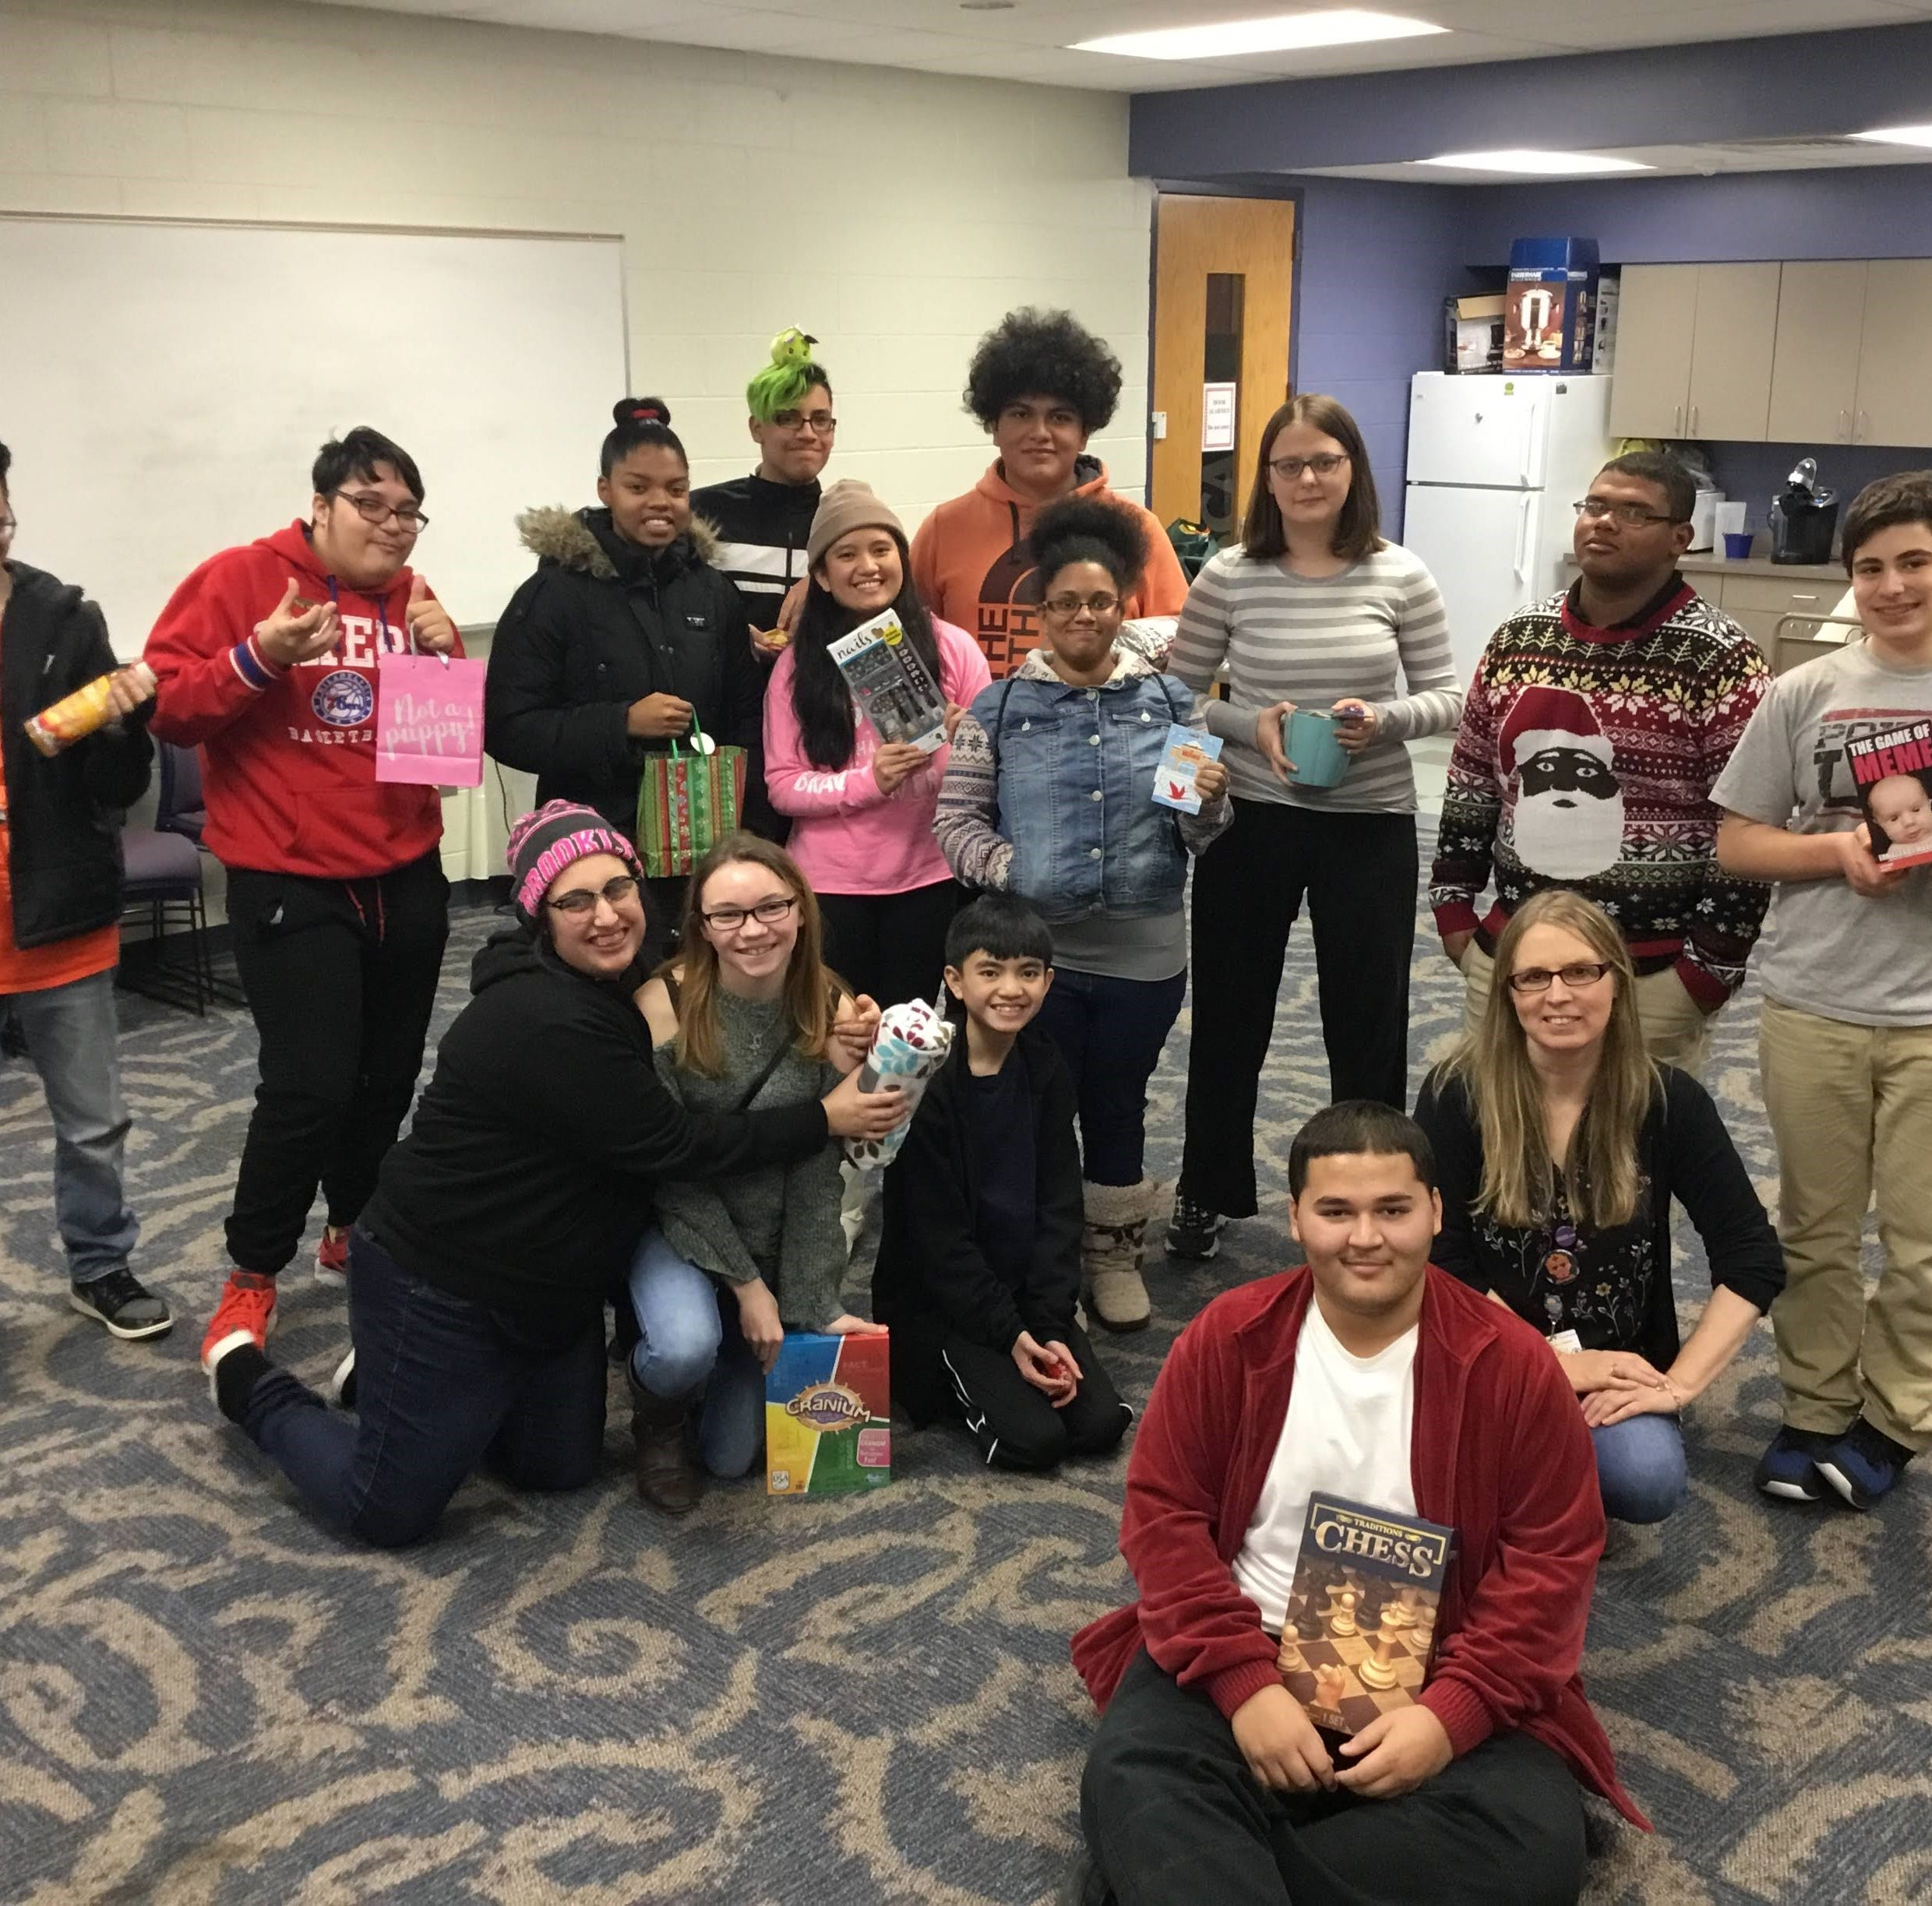 Teens celebrate winter at Vineland Public Library